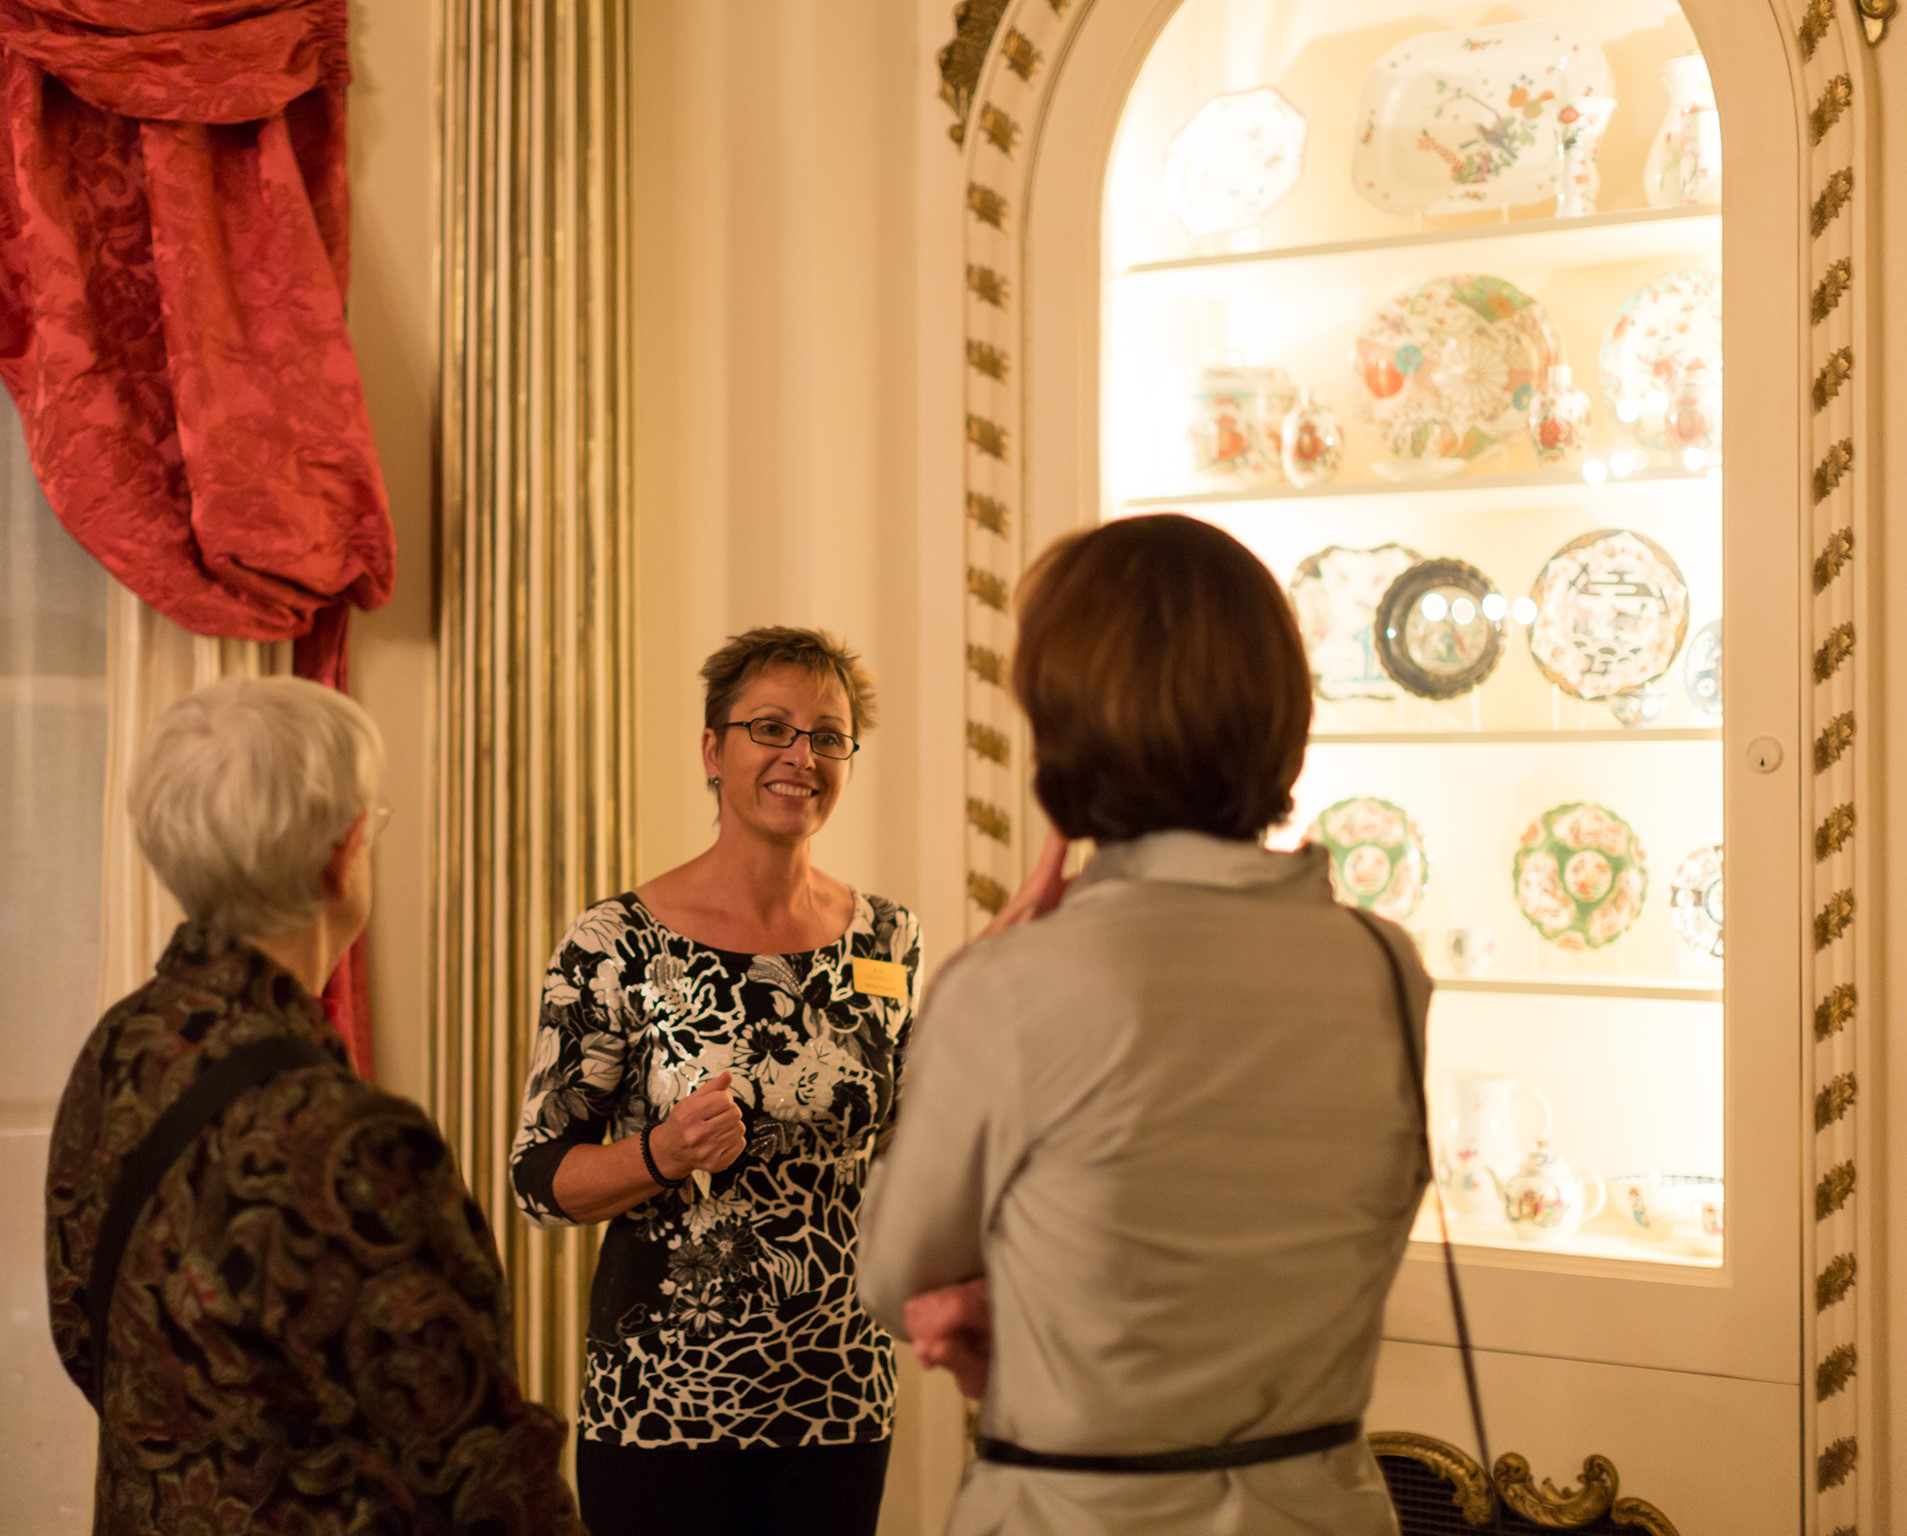 Rienzi gallery talk / tour with porcelain